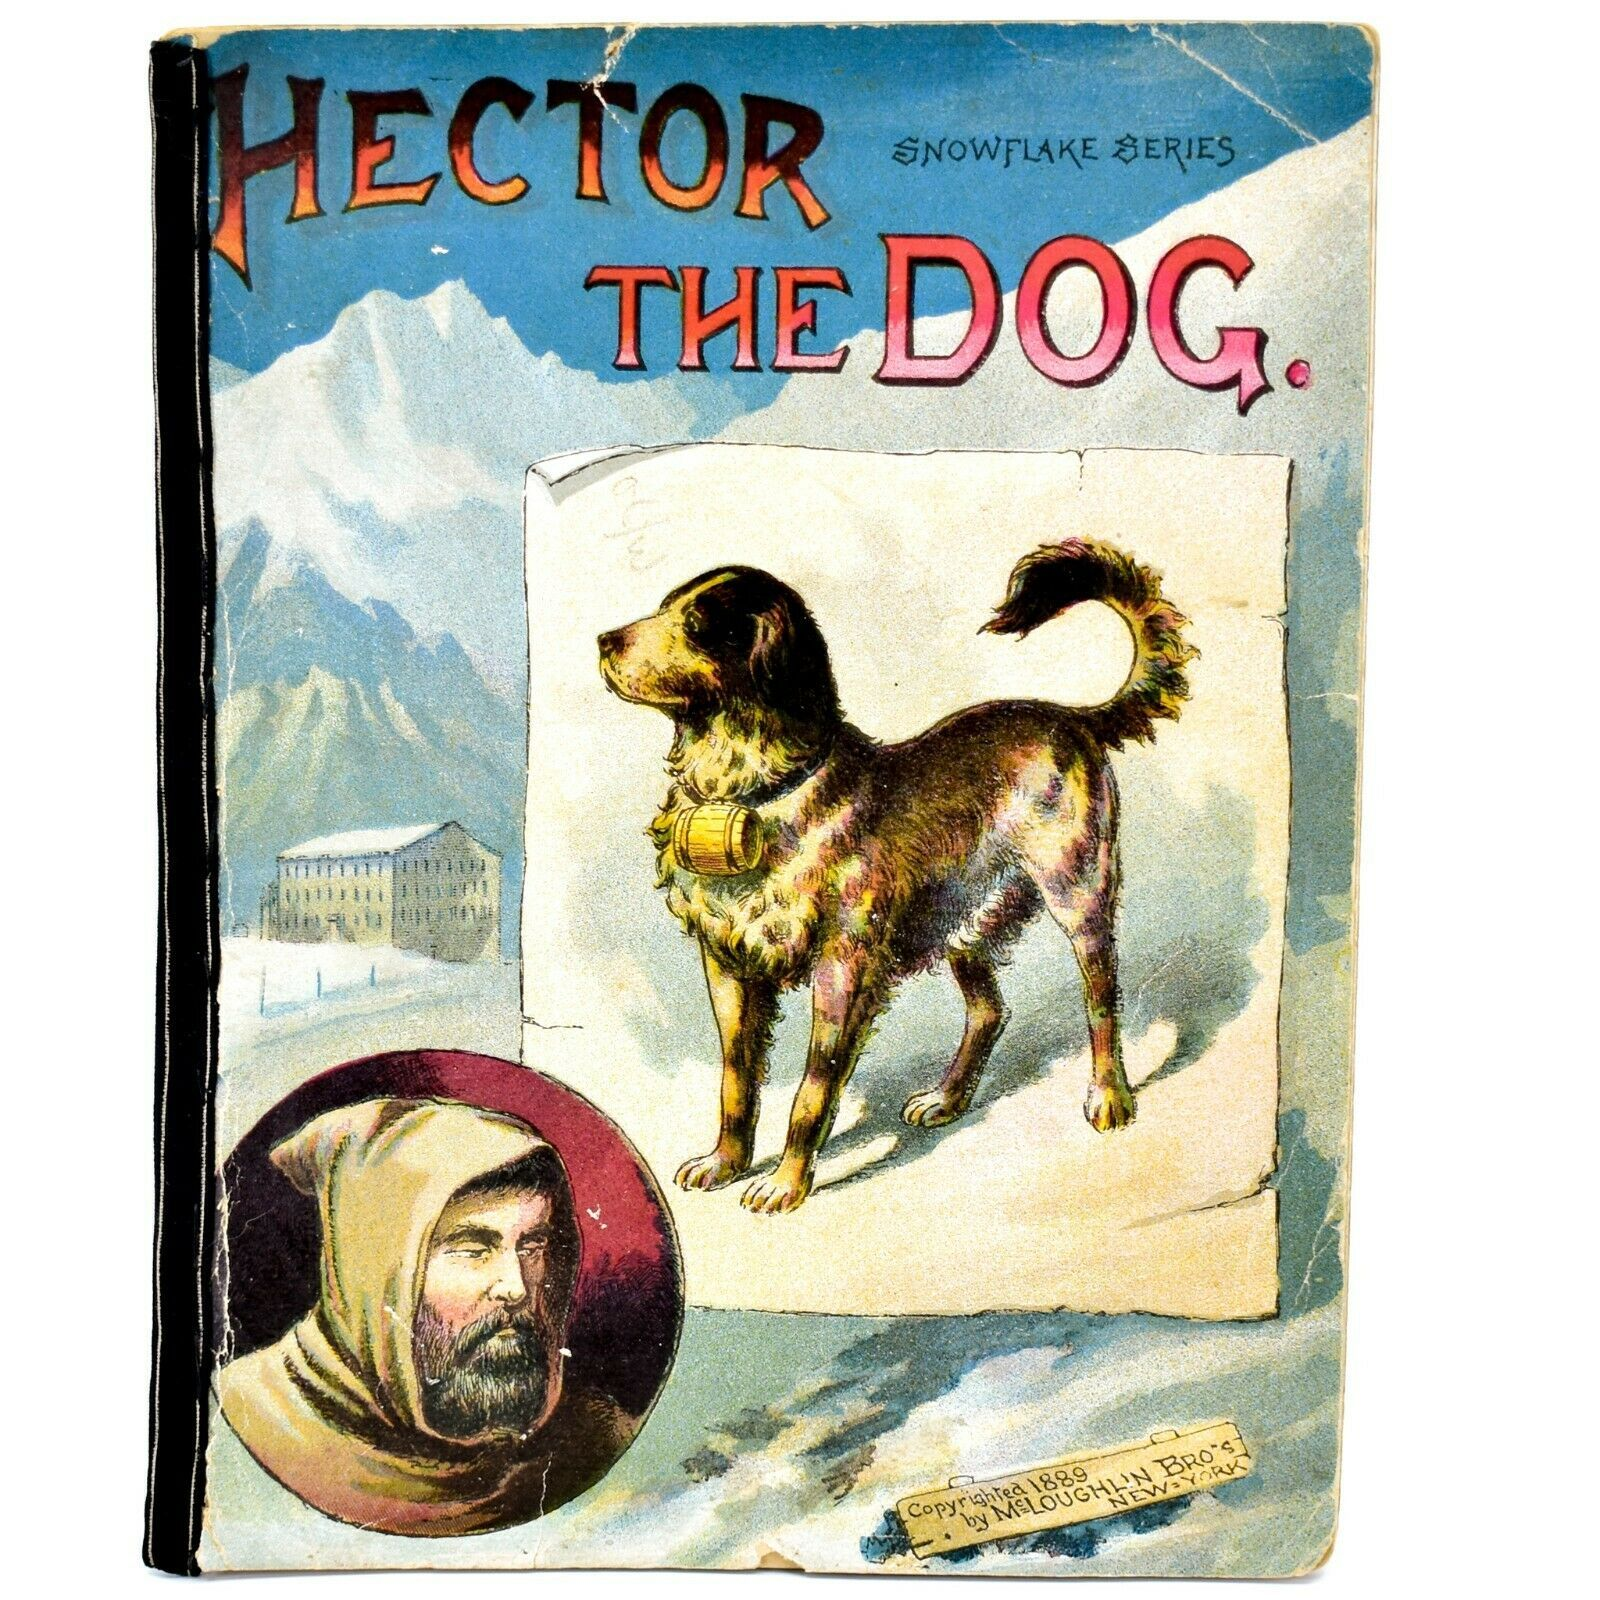 Hector the Dog Snowflake Series Illustrated Book Copyright 1889